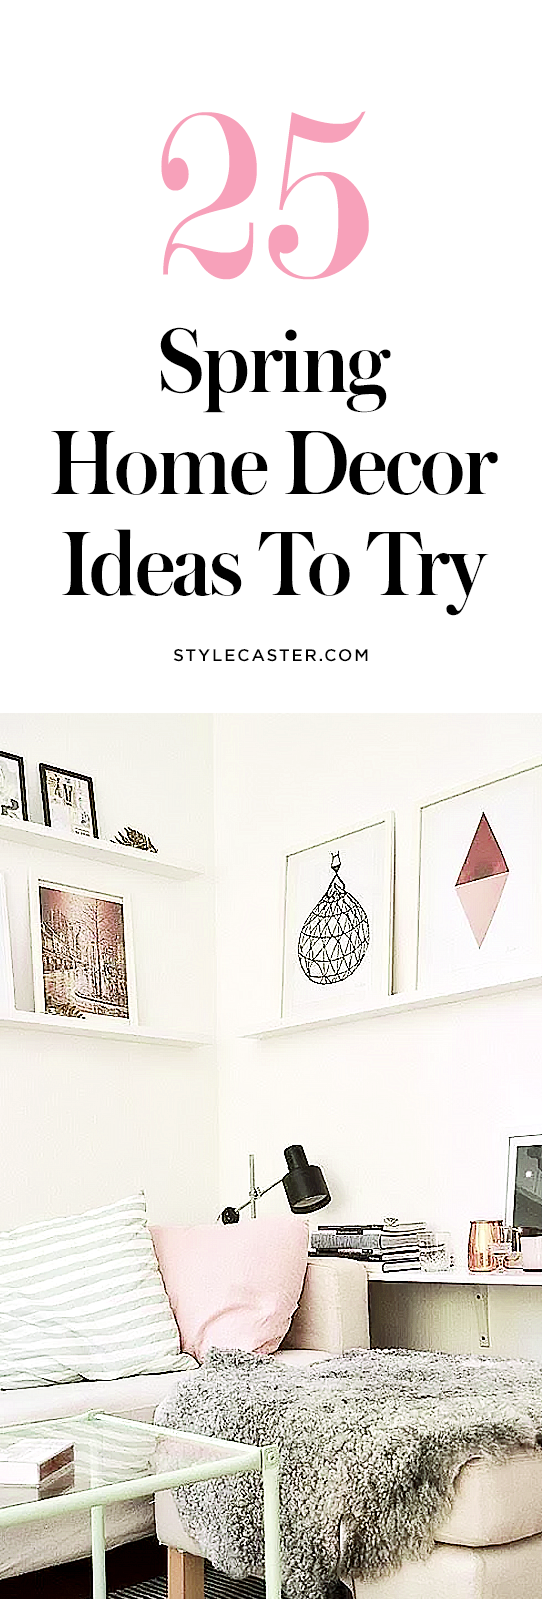 25 modern Spring home decor ideas | Major inspiration ahead! Interior decorating with pastels @stylecaster